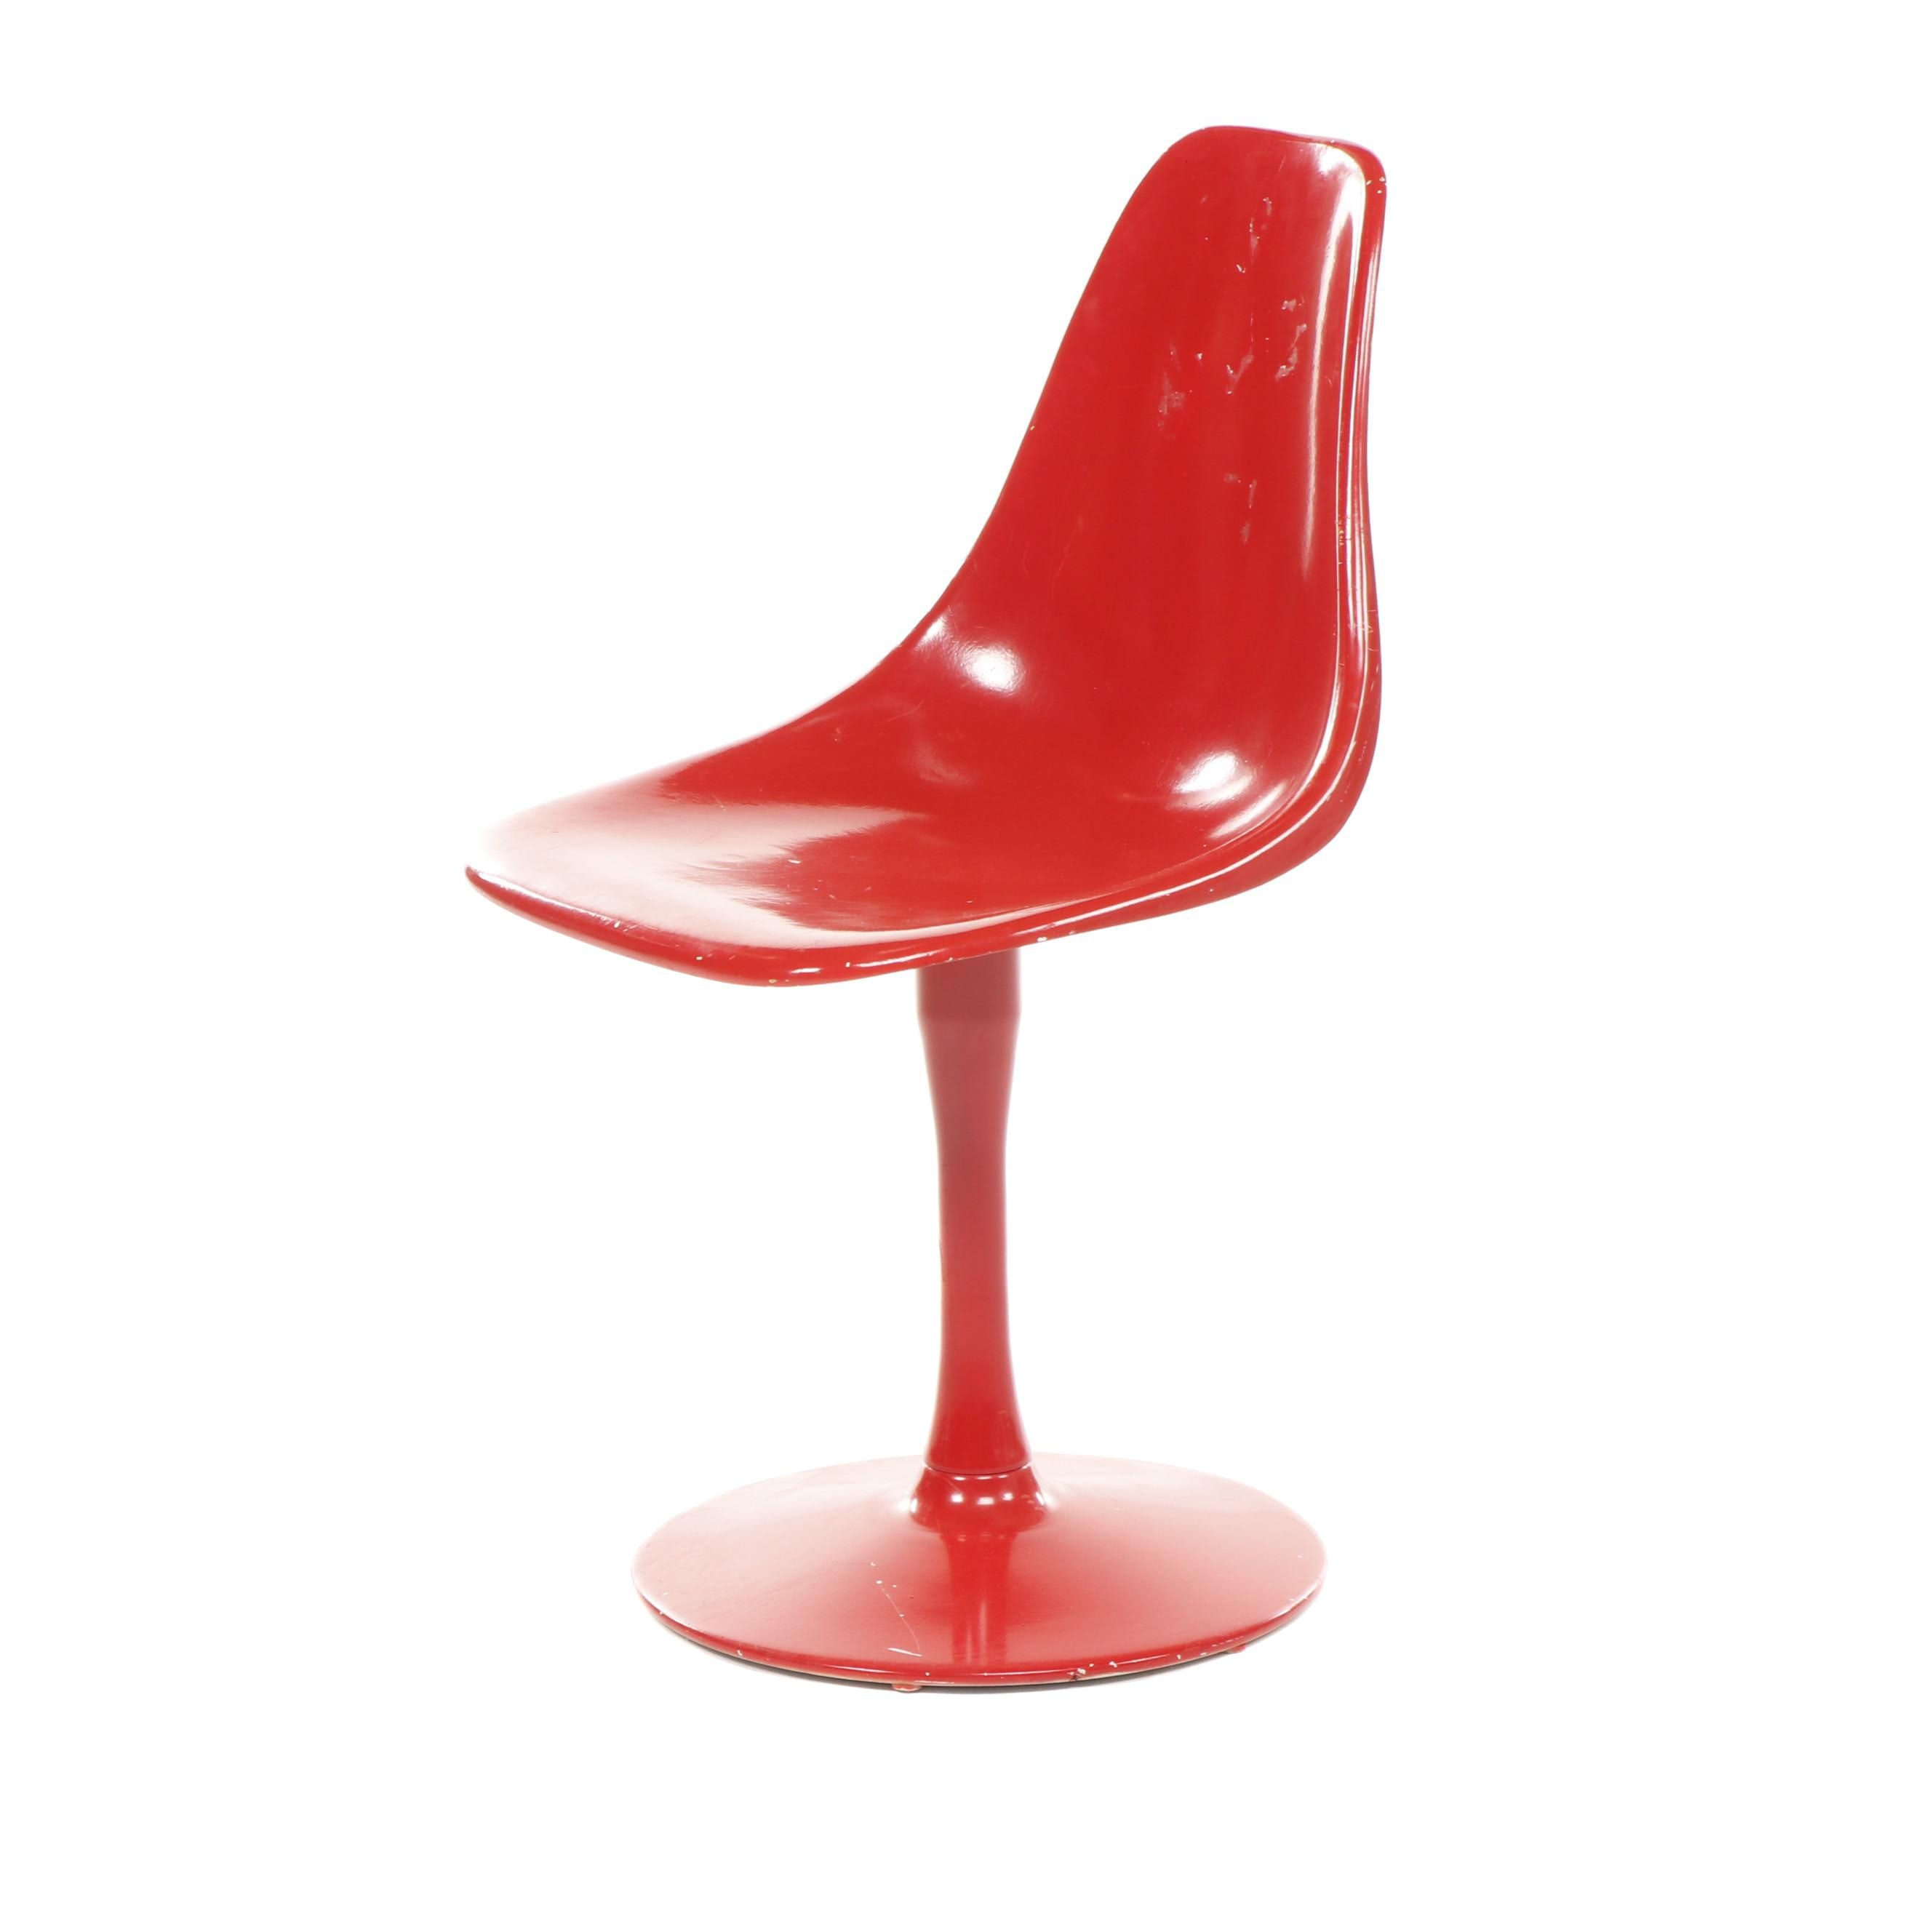 Mid Century Modern Red Fiberglass Tulip Style Side Chair